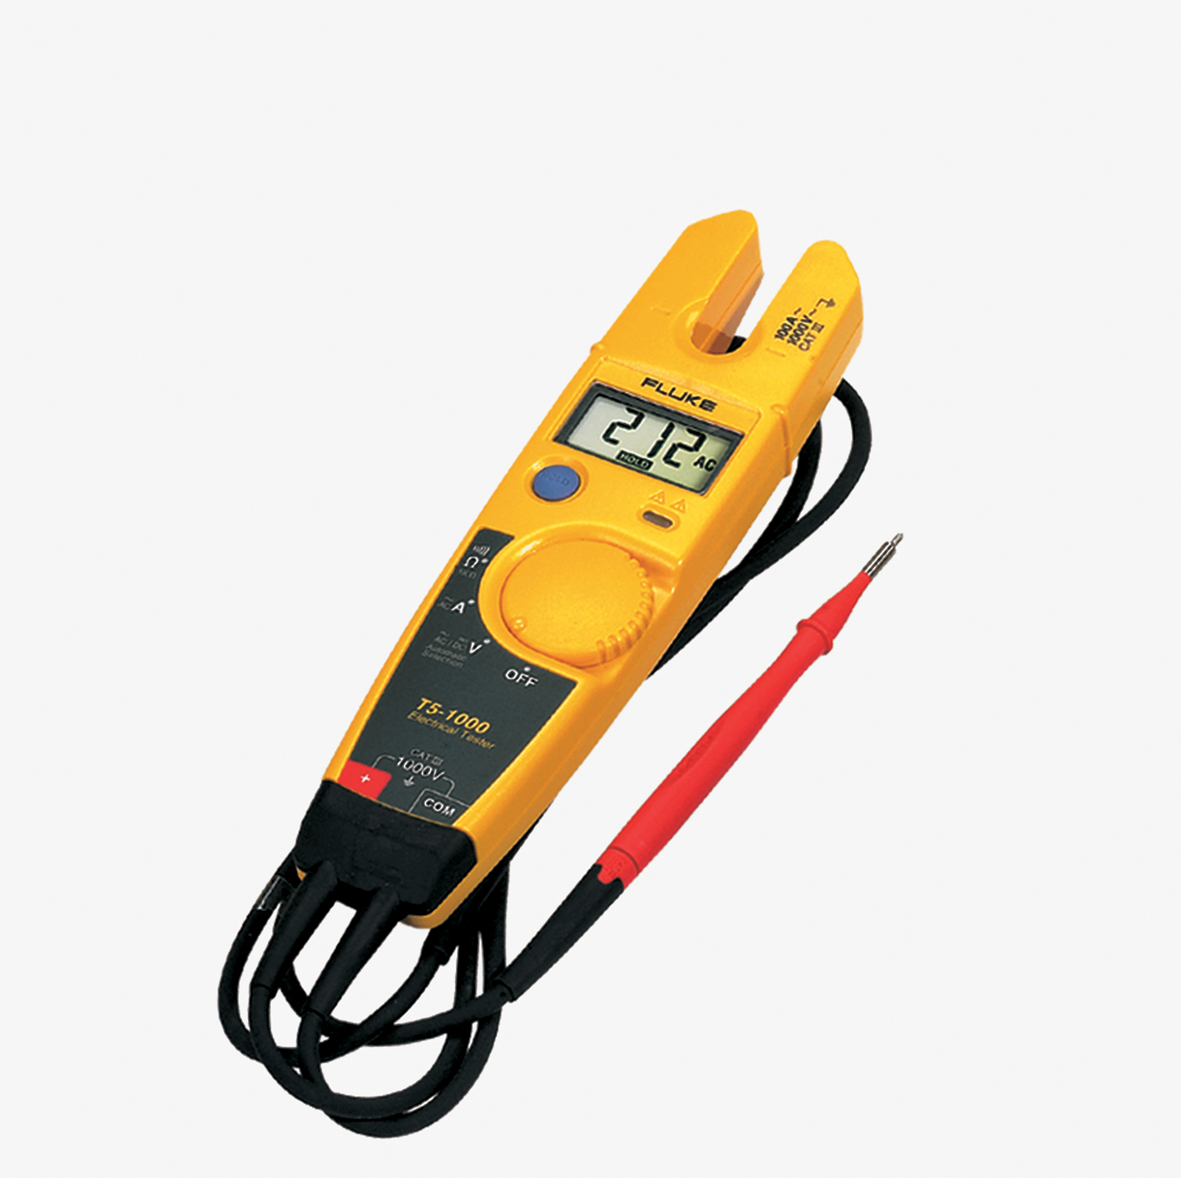 Fluke Test Instruments : Fluke t voltage tester kiesub electronics